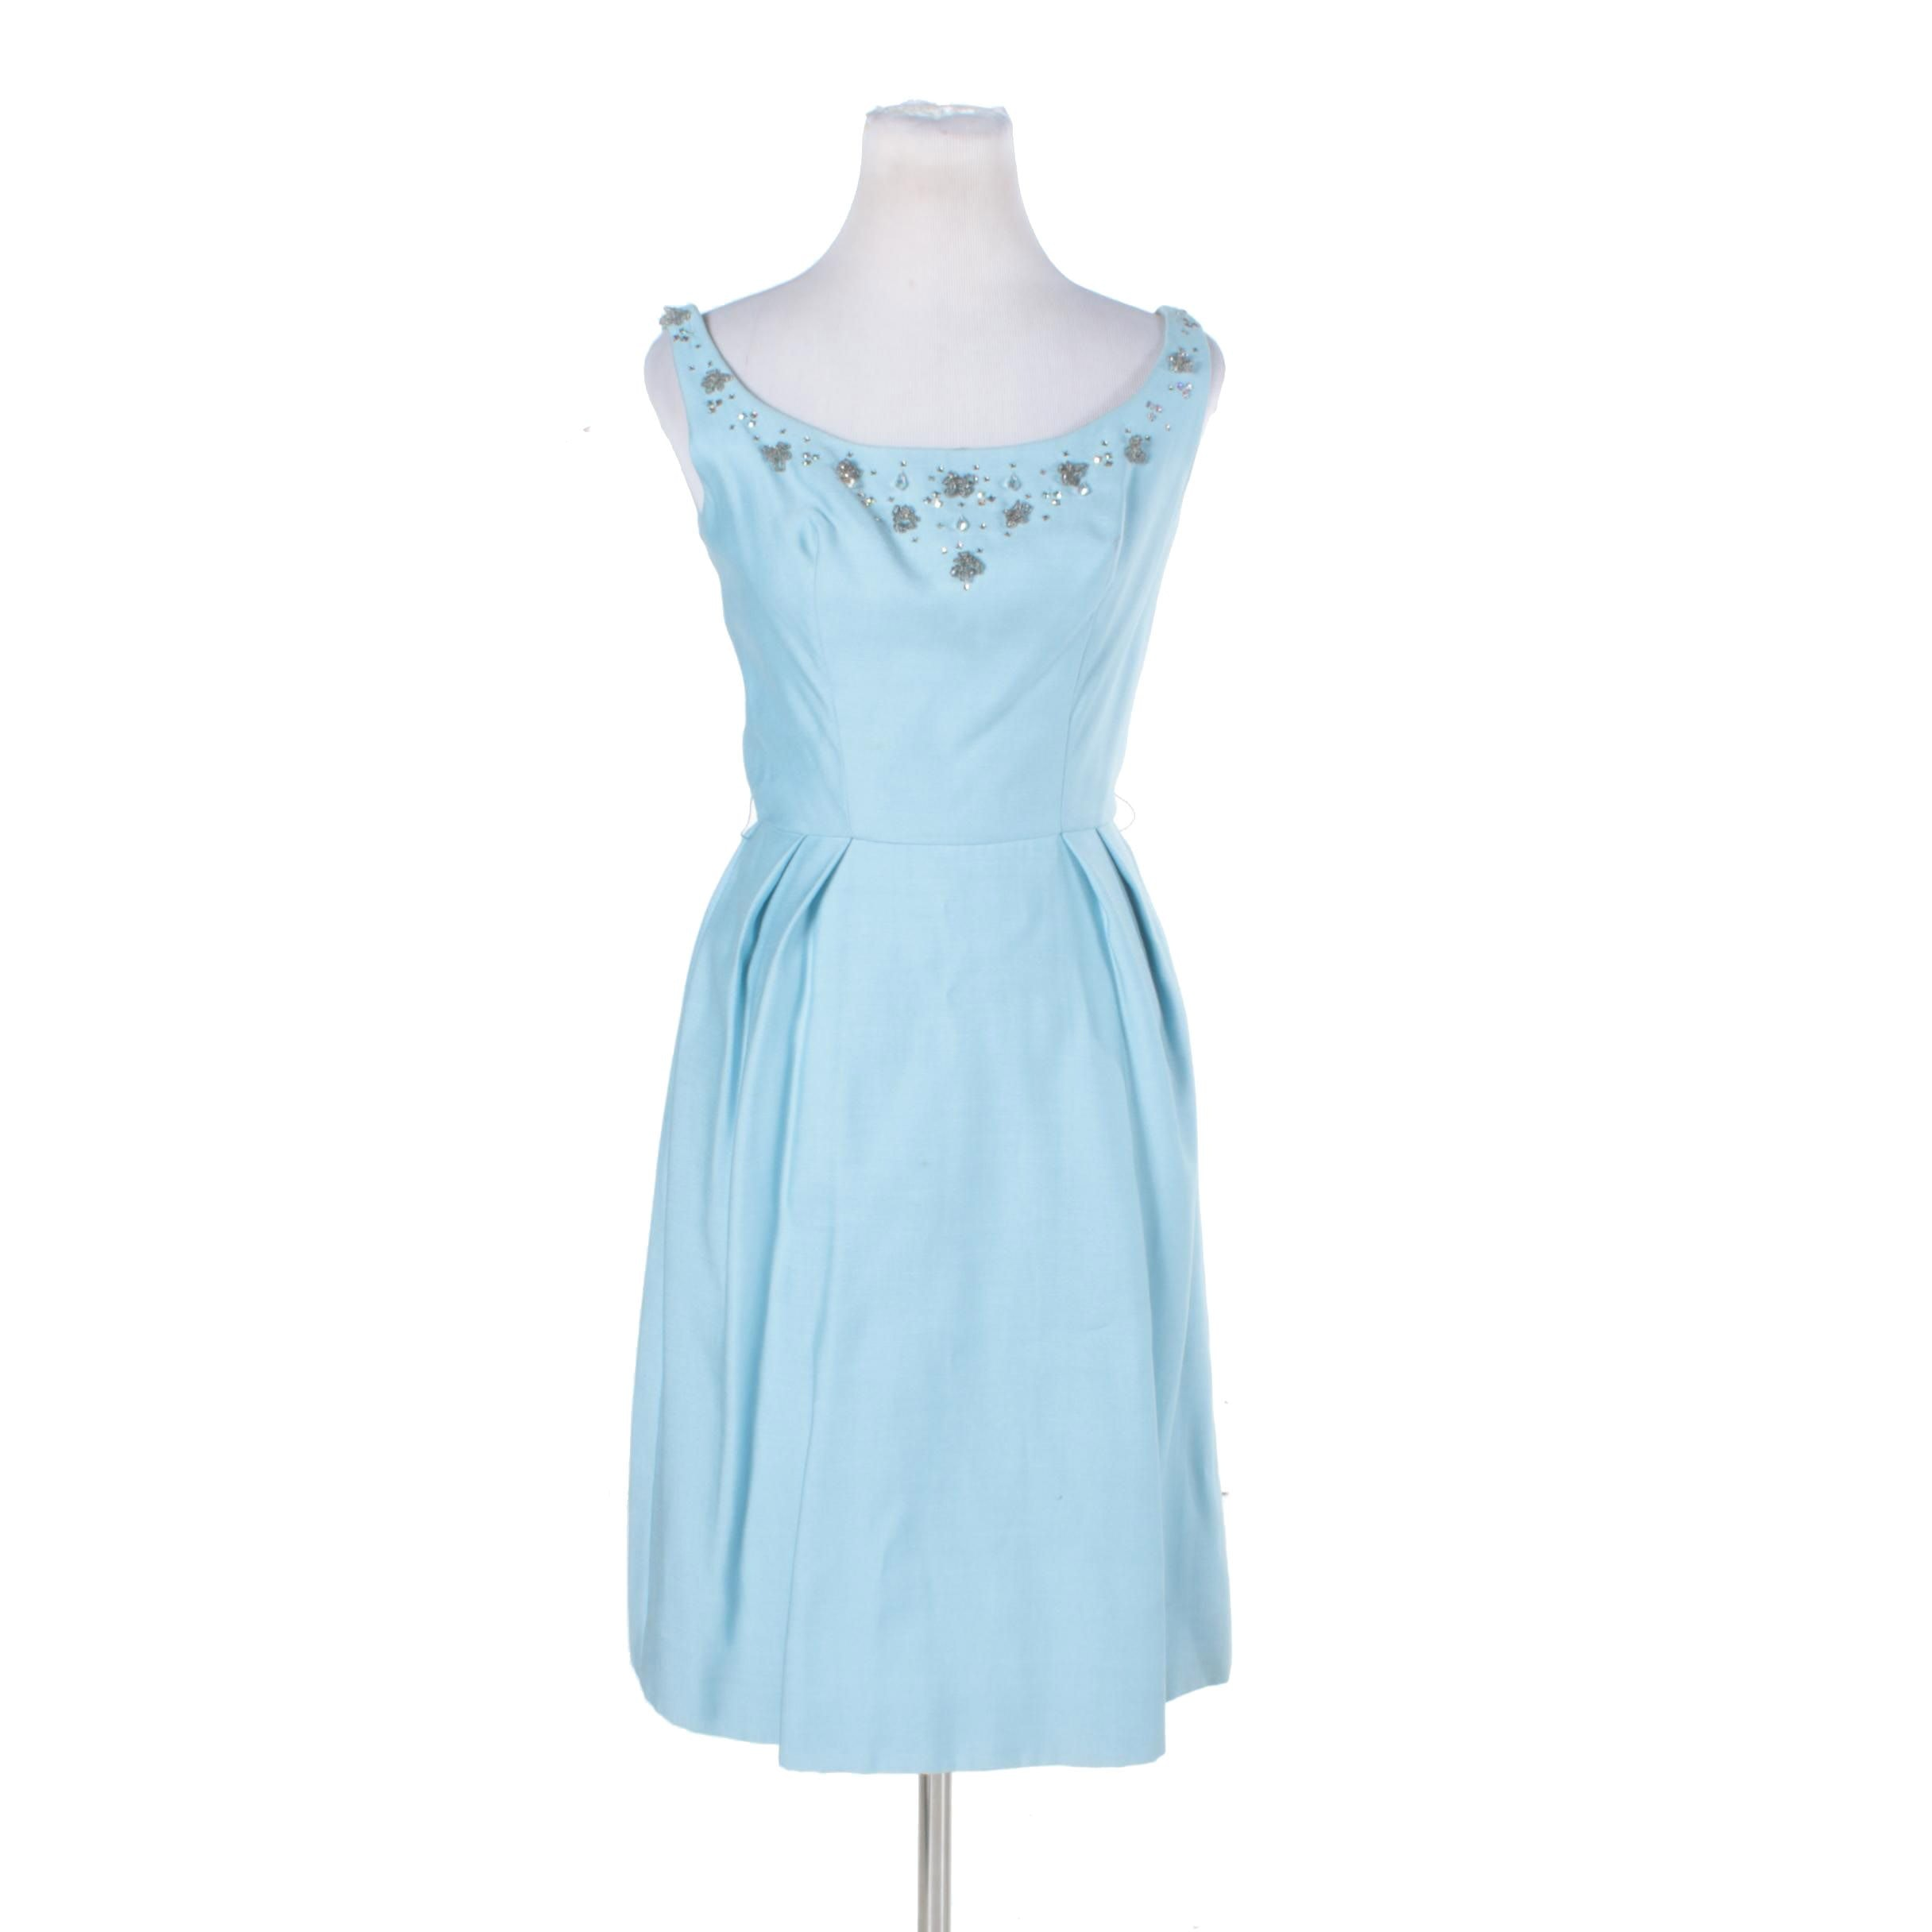 1960s Mardi Gras Sky Blue Beaded Cocktail Dress